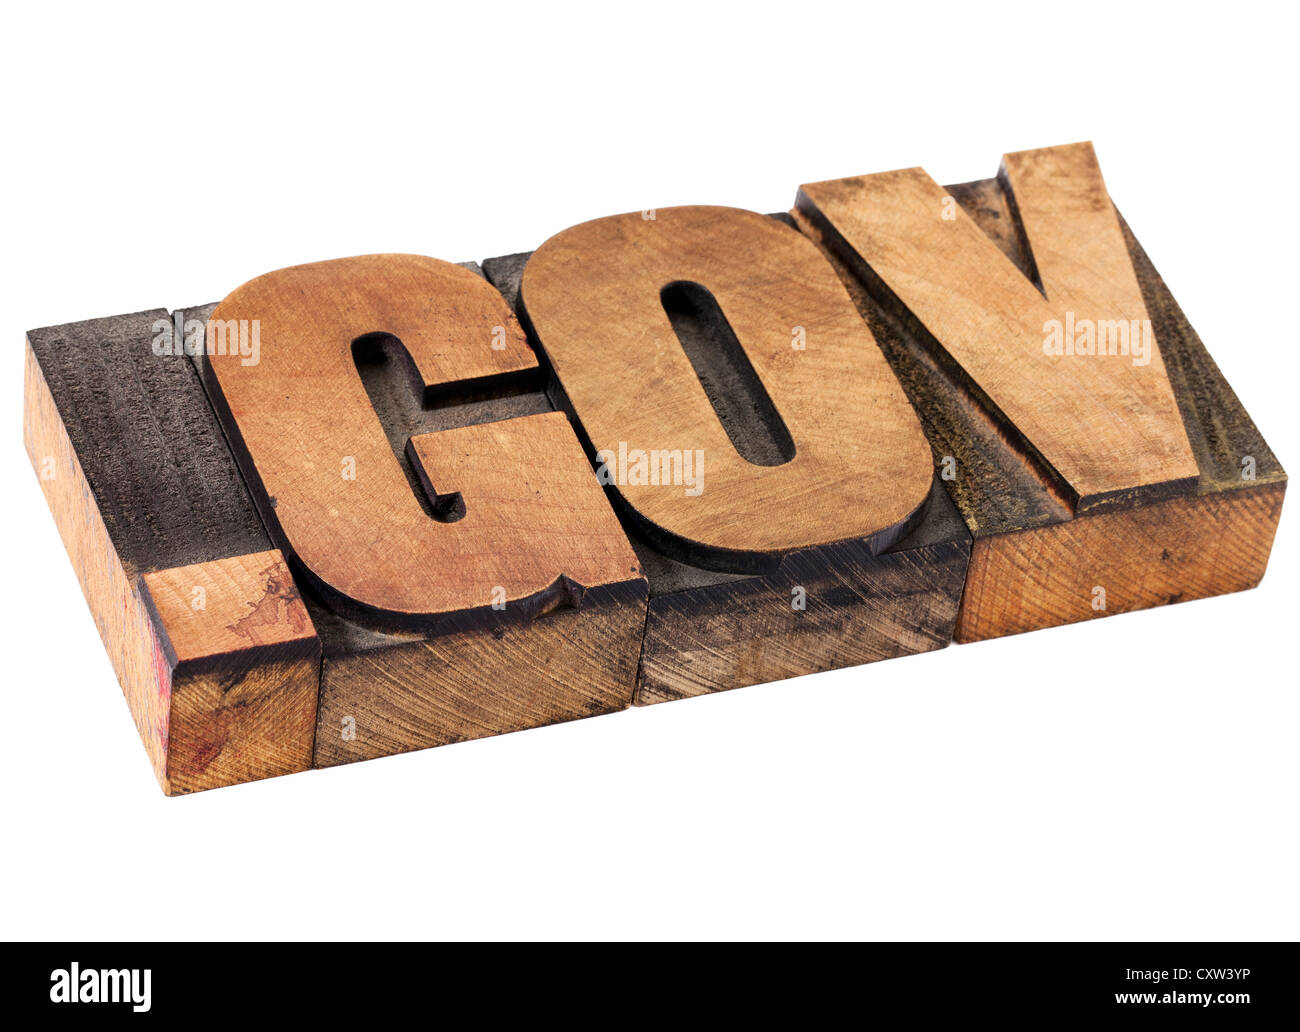 dot gov internet domain - network address for government- isolated text in vintage letterpress wood type - Stock Image